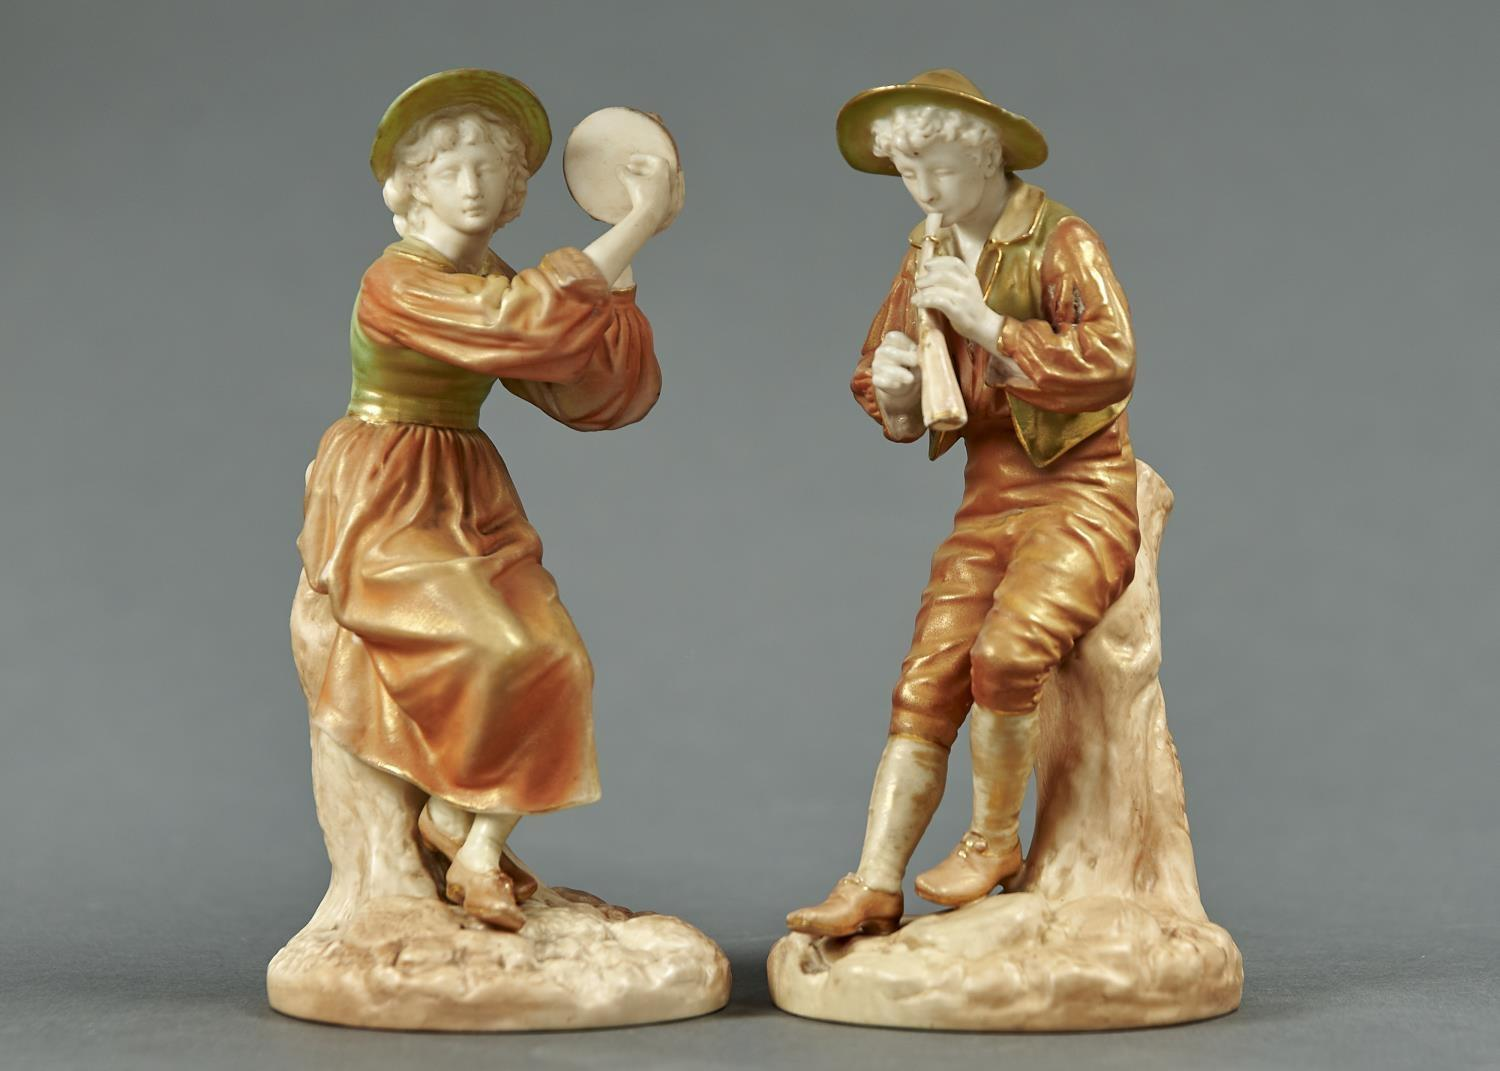 A PAIR OF ROYAL WORCESTER FIGURES OF STREPHON THE BOY PIPER AND HIS FEMALE COMPANION, 1903, MODELLED